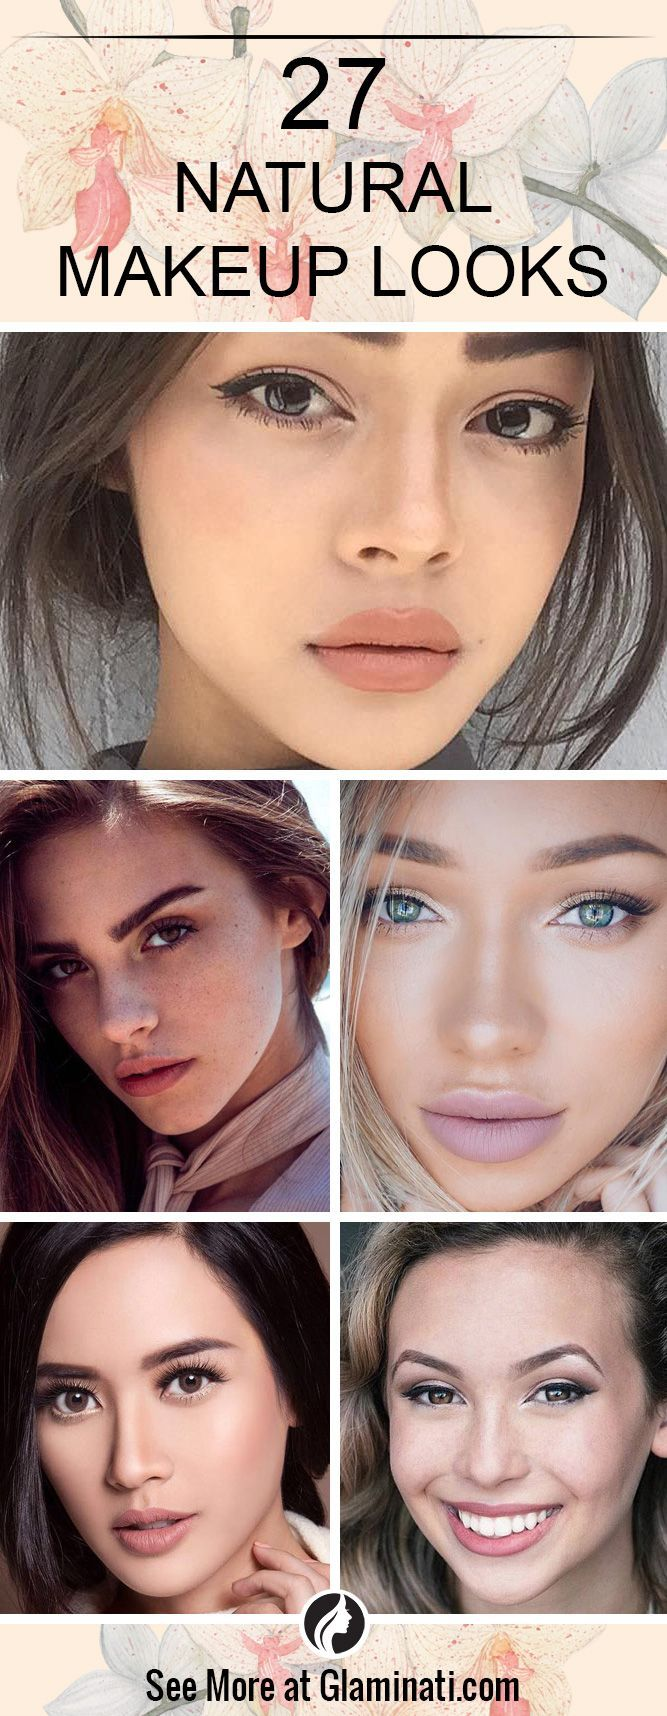 Natural makeup looks as if you do not wear it at all. It is flawless and fresh, which is perfect for the summer. We have collected 27 makeup ideas that can impress your boyfriend. ★ See more: http://glaminati.com/best-natural-makeup-looks/?utm_source=Pinterest&utm_medium=Social&utm_campaign=CG-best-natural-makeup-looks-1-19072016